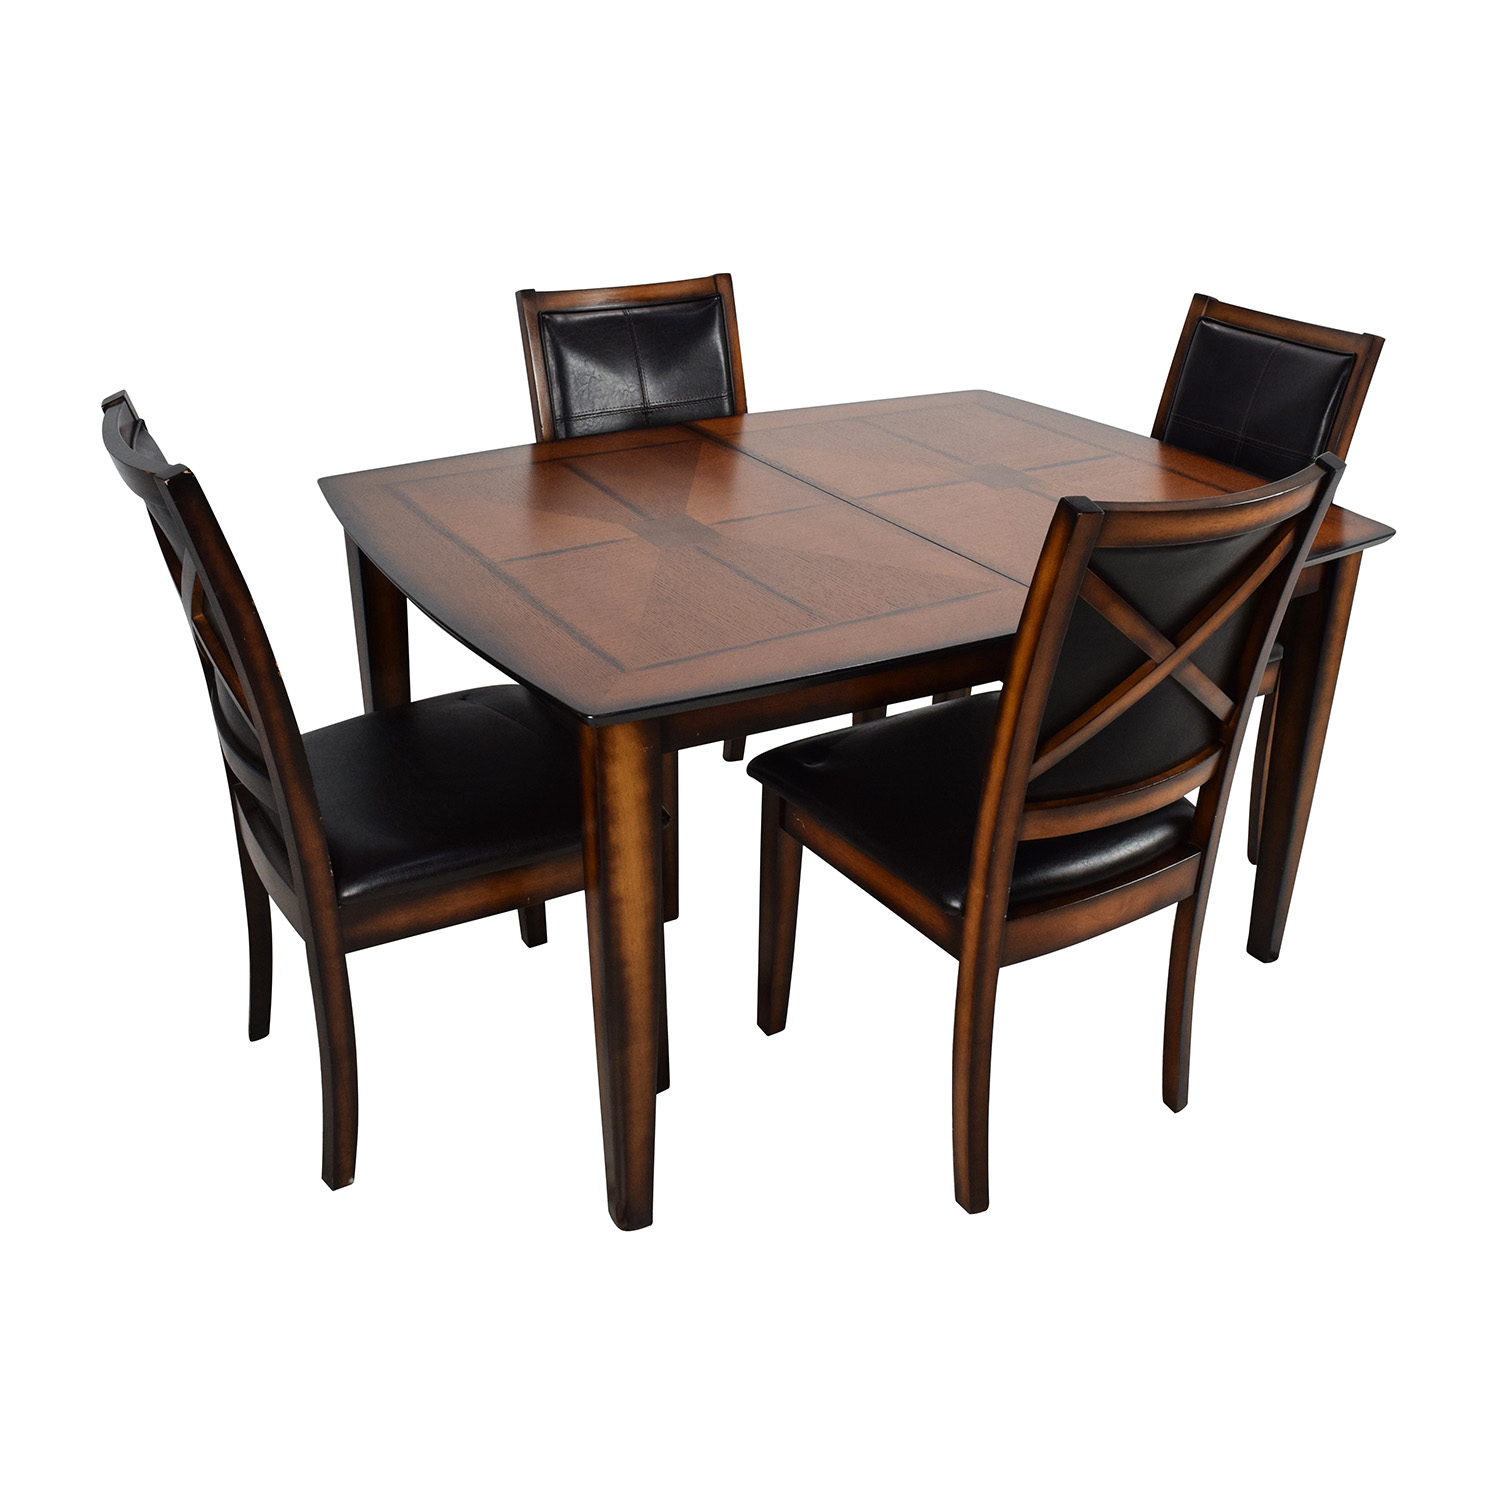 Dining Room Tables Denver: Raymour & Flanigan Raymour & Flanigan Denver 5